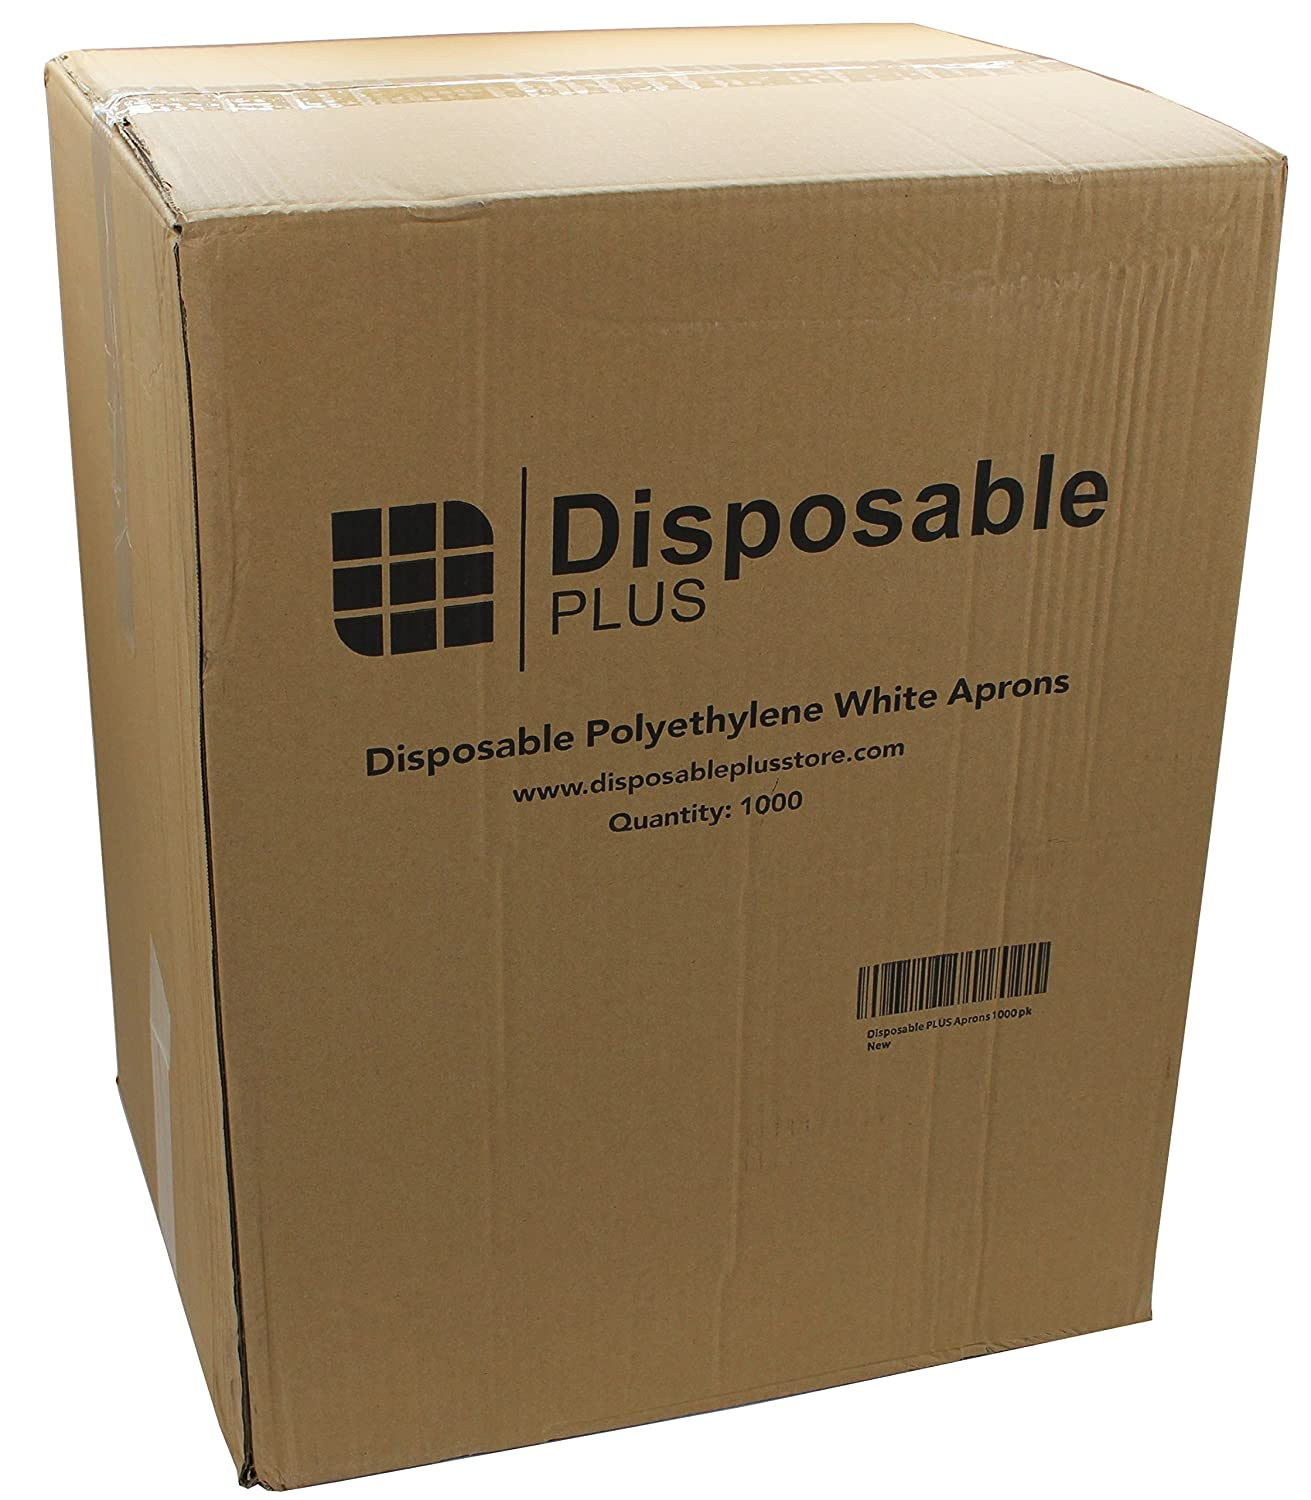 White disposable apron - Amazon Com Disposable Plus White Polyethylene Waterproof Aprons 28 X 46 Inches Stay Clean And Dry All Day While Cooking Serving Painting Or Dishwashing